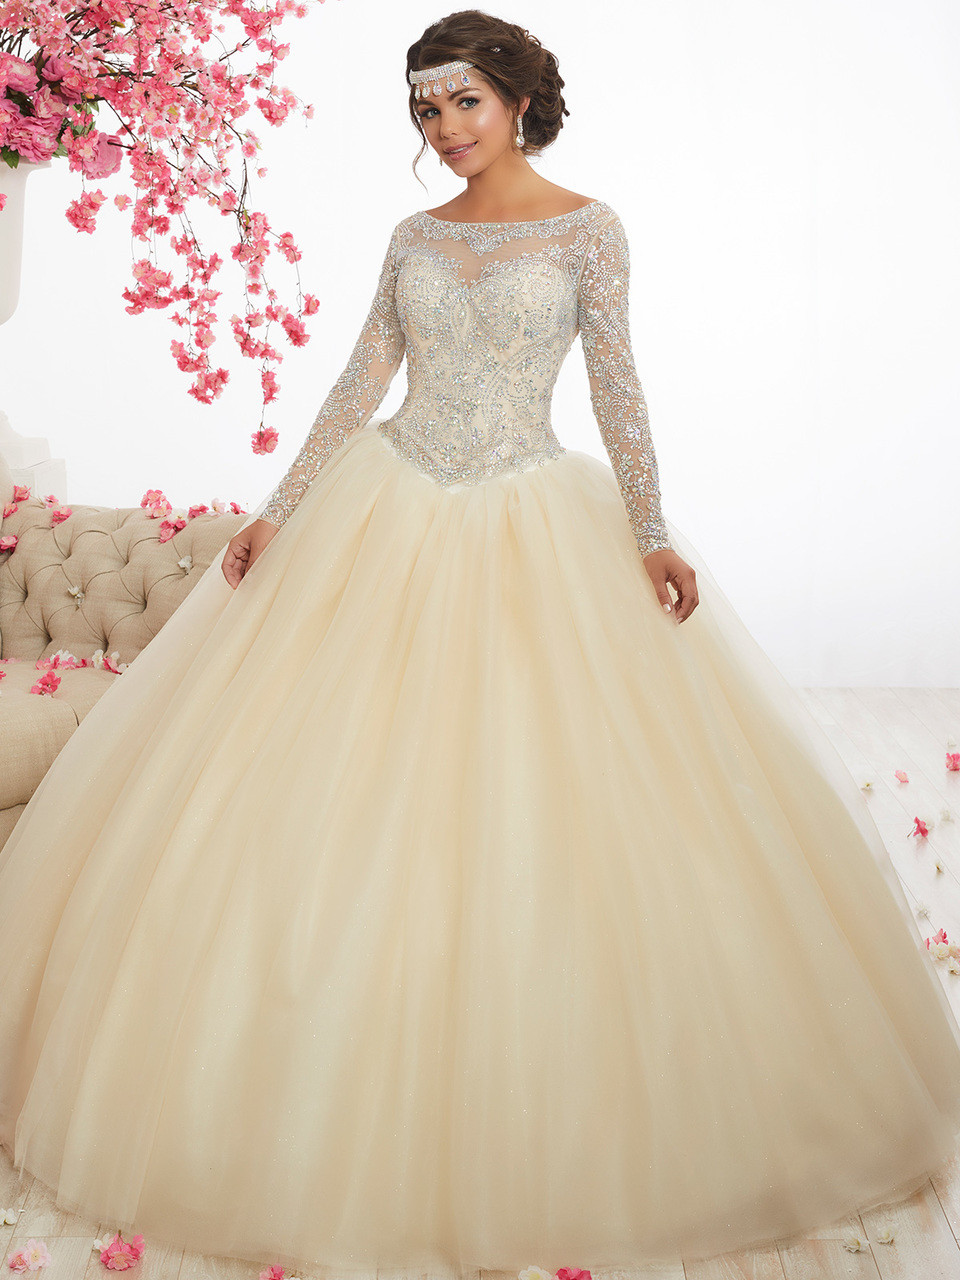 f43d2774fb8 champagne sheer long sleeves quinceanera dress bateau neckline beaded  bodice and plain skirt by fiesta 56347